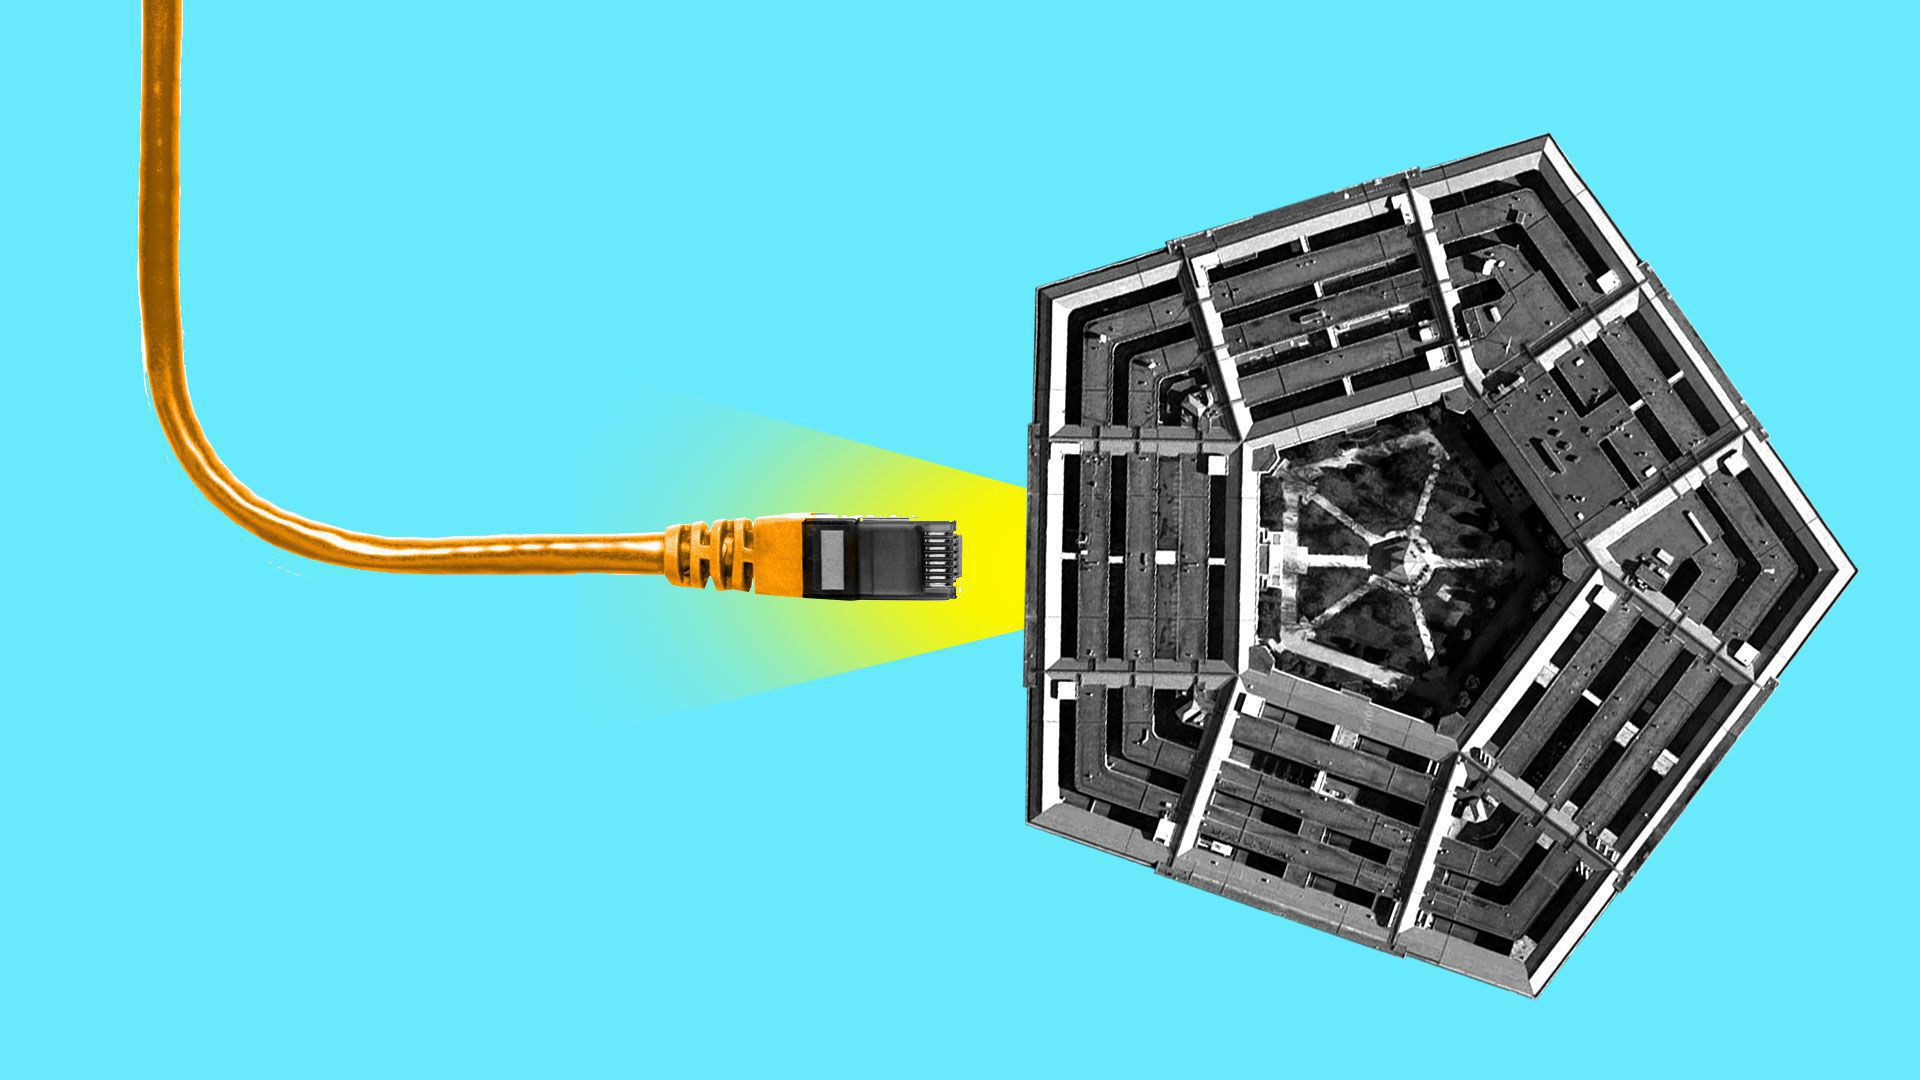 A ethernet cable being plugged into the Pentagon.